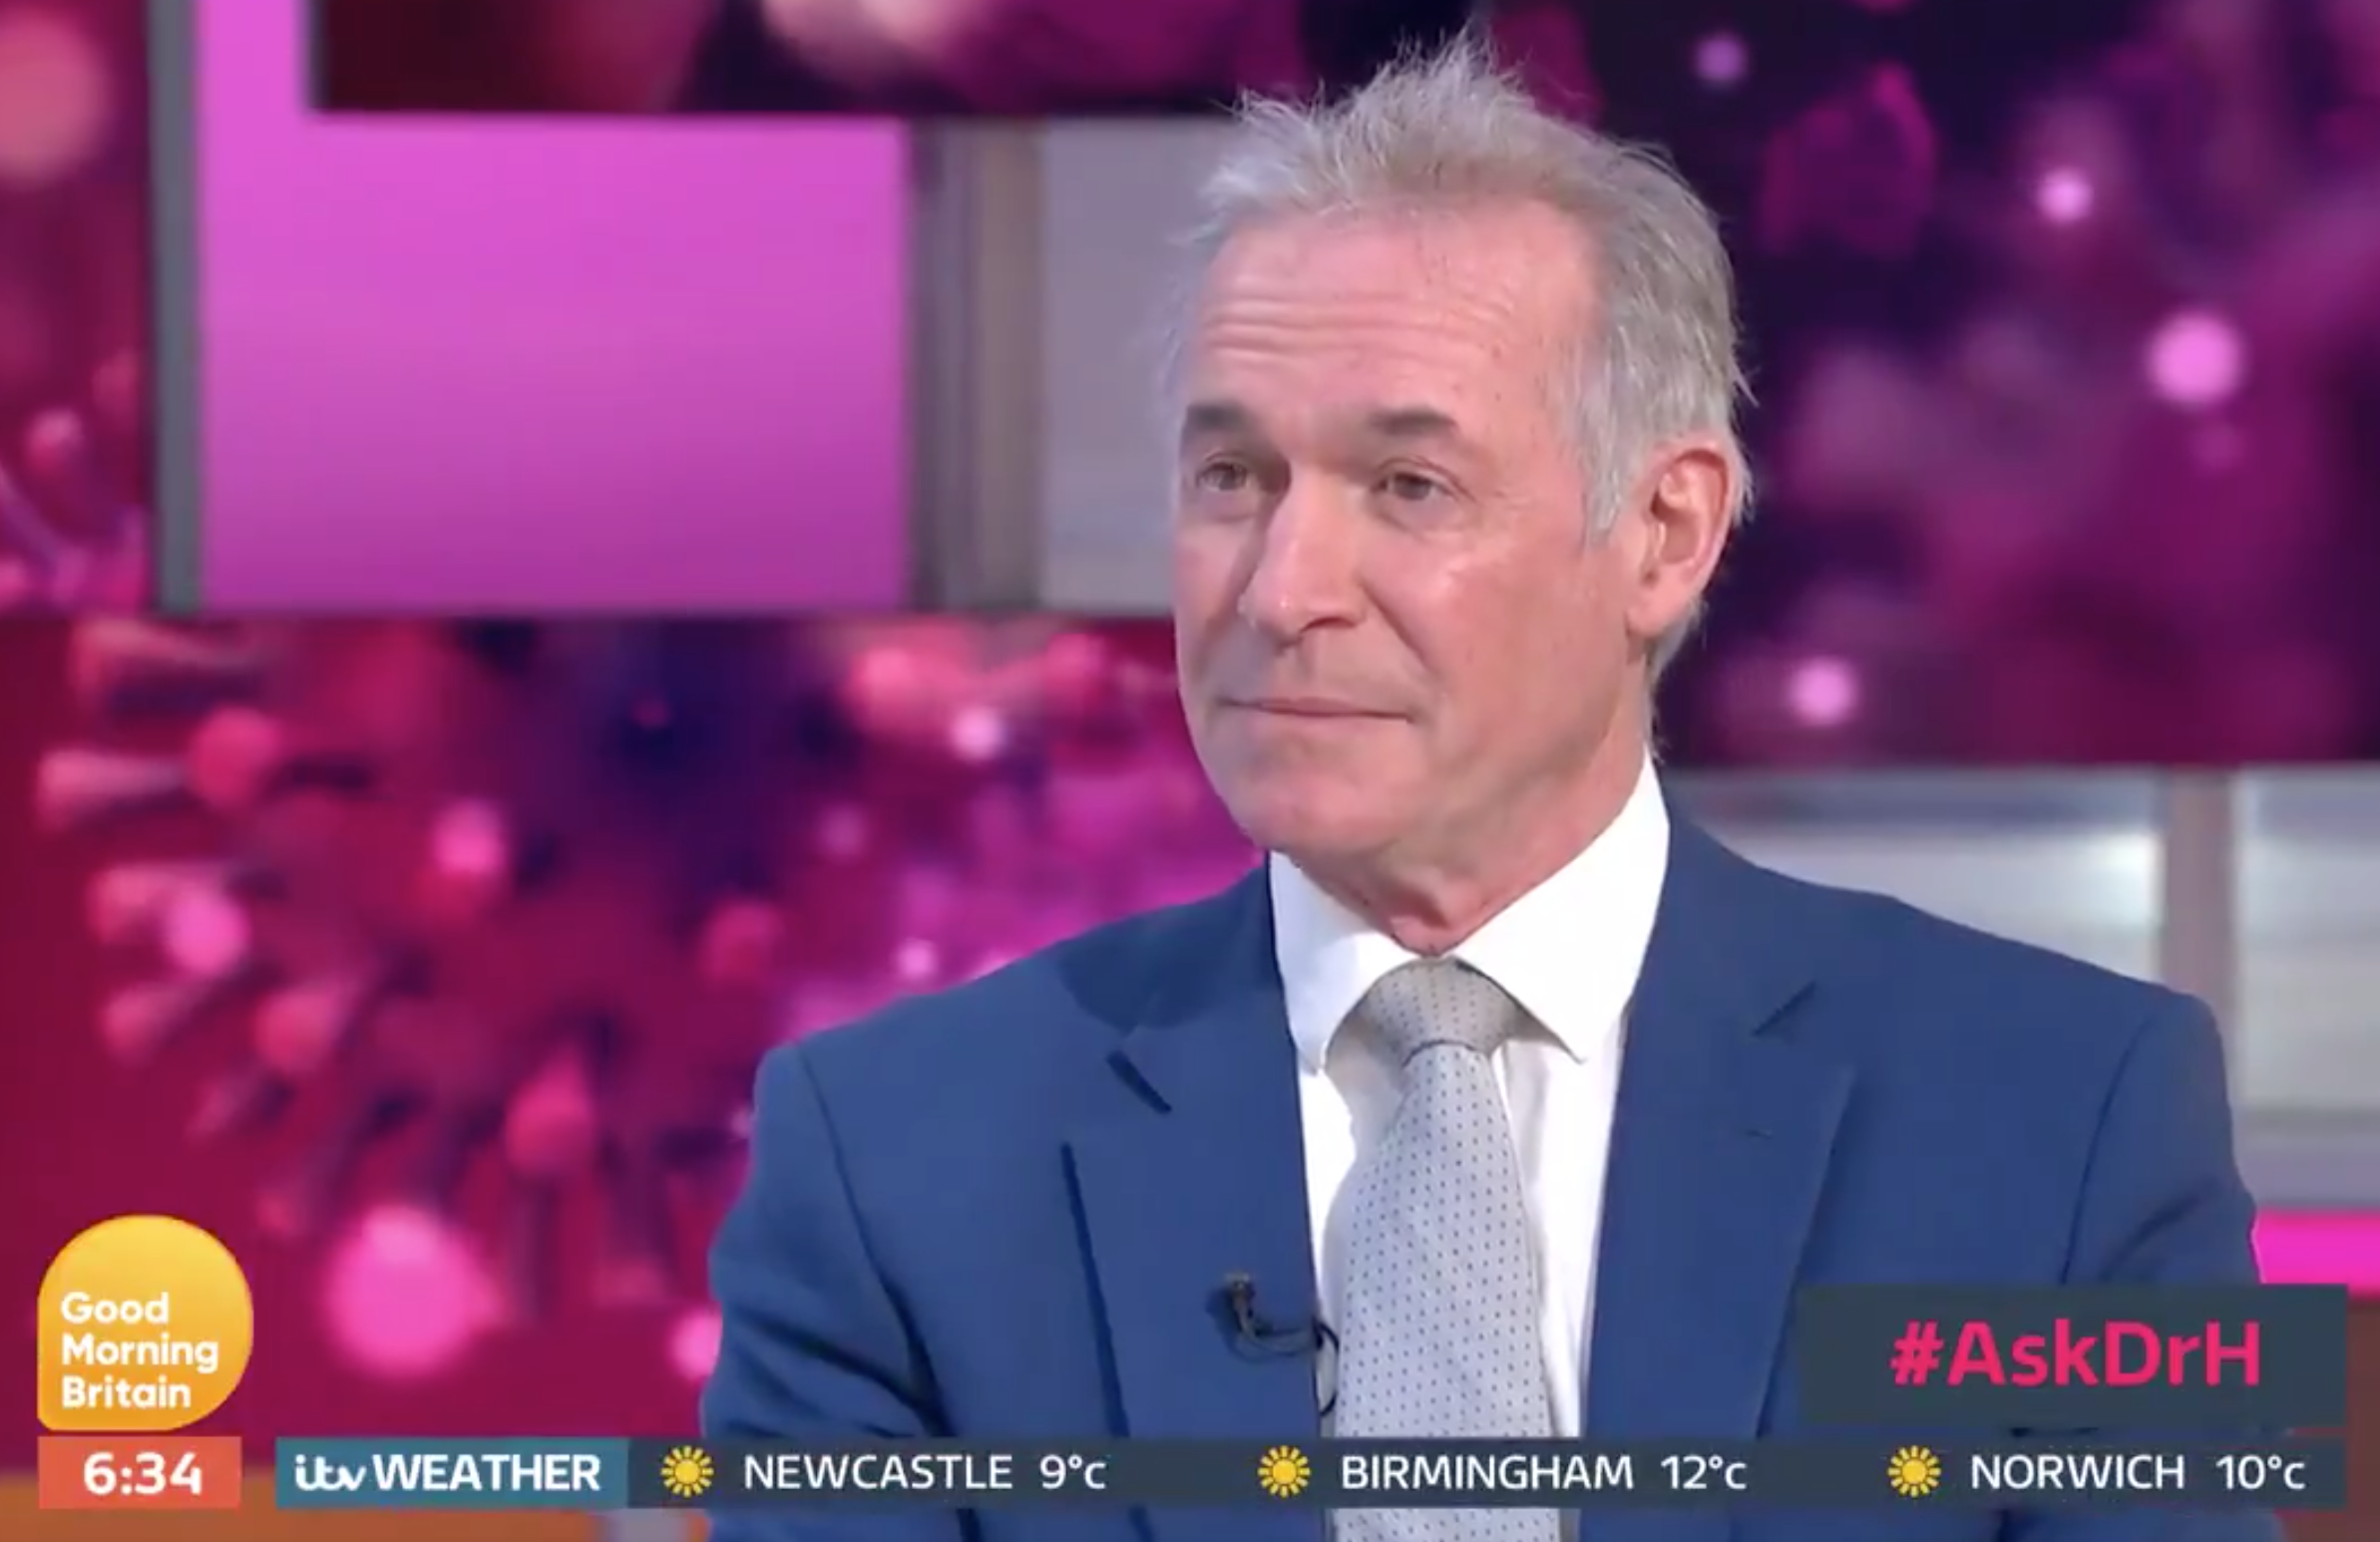 7 huge coronavirus rumours cleared up by Dr Hilary Jones on Good Morning Britain